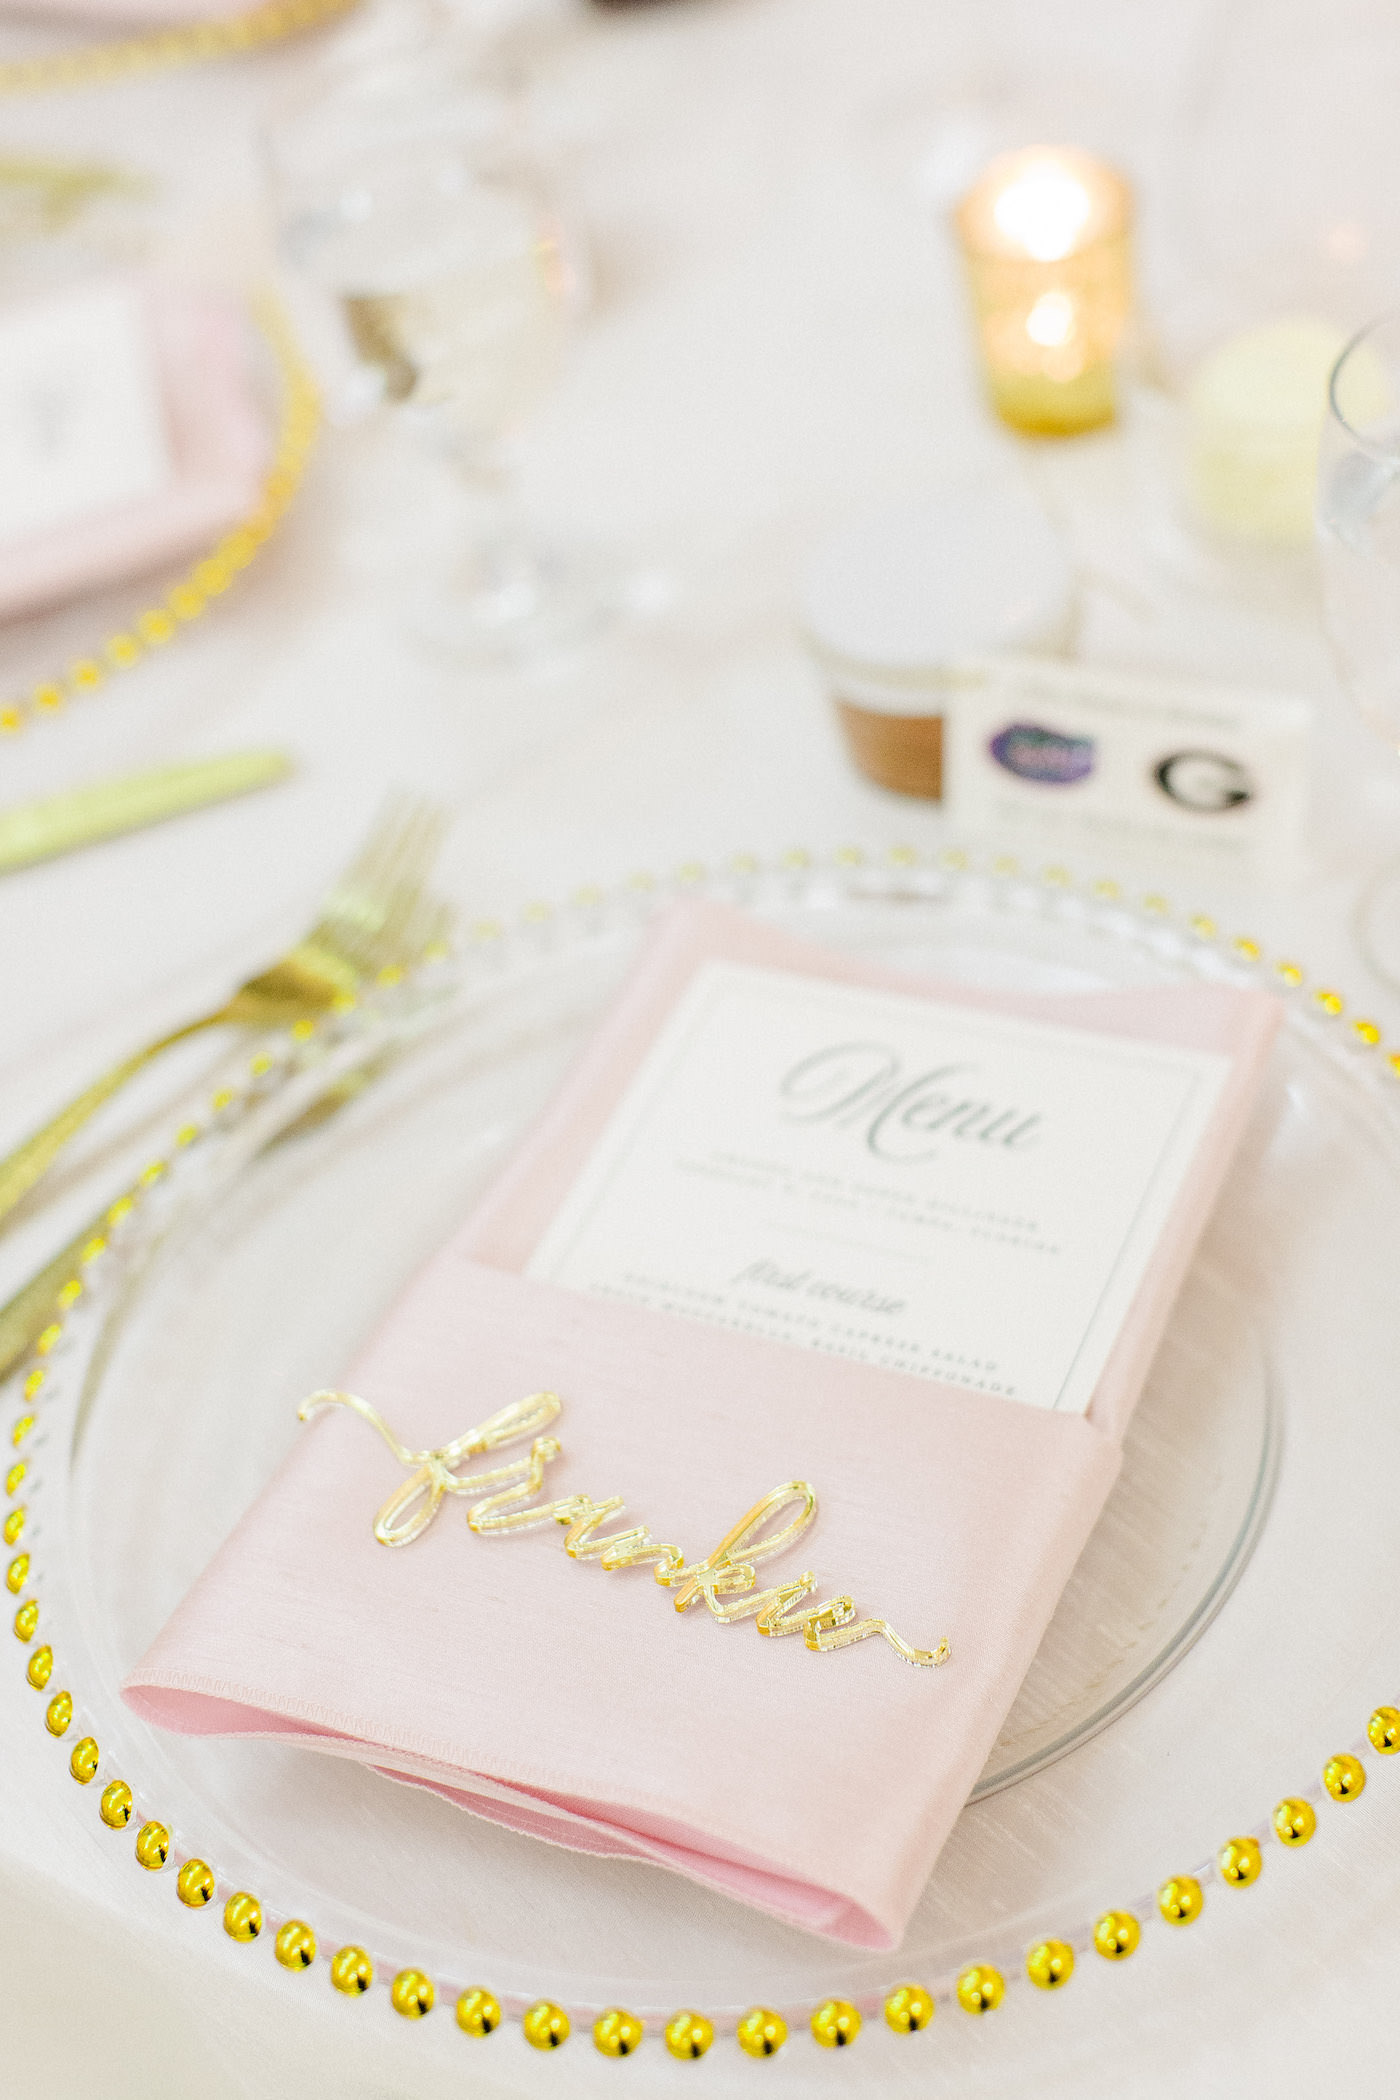 Classic Florida Wedding Reception Table Decor, Clear Glass Charger with Gold Beaded Rim Detailing, Blush Pink Linens with Printed Menu, Gold Laser Engraved Name for Place card | Florida Wedding Planner Breezin' Weddings